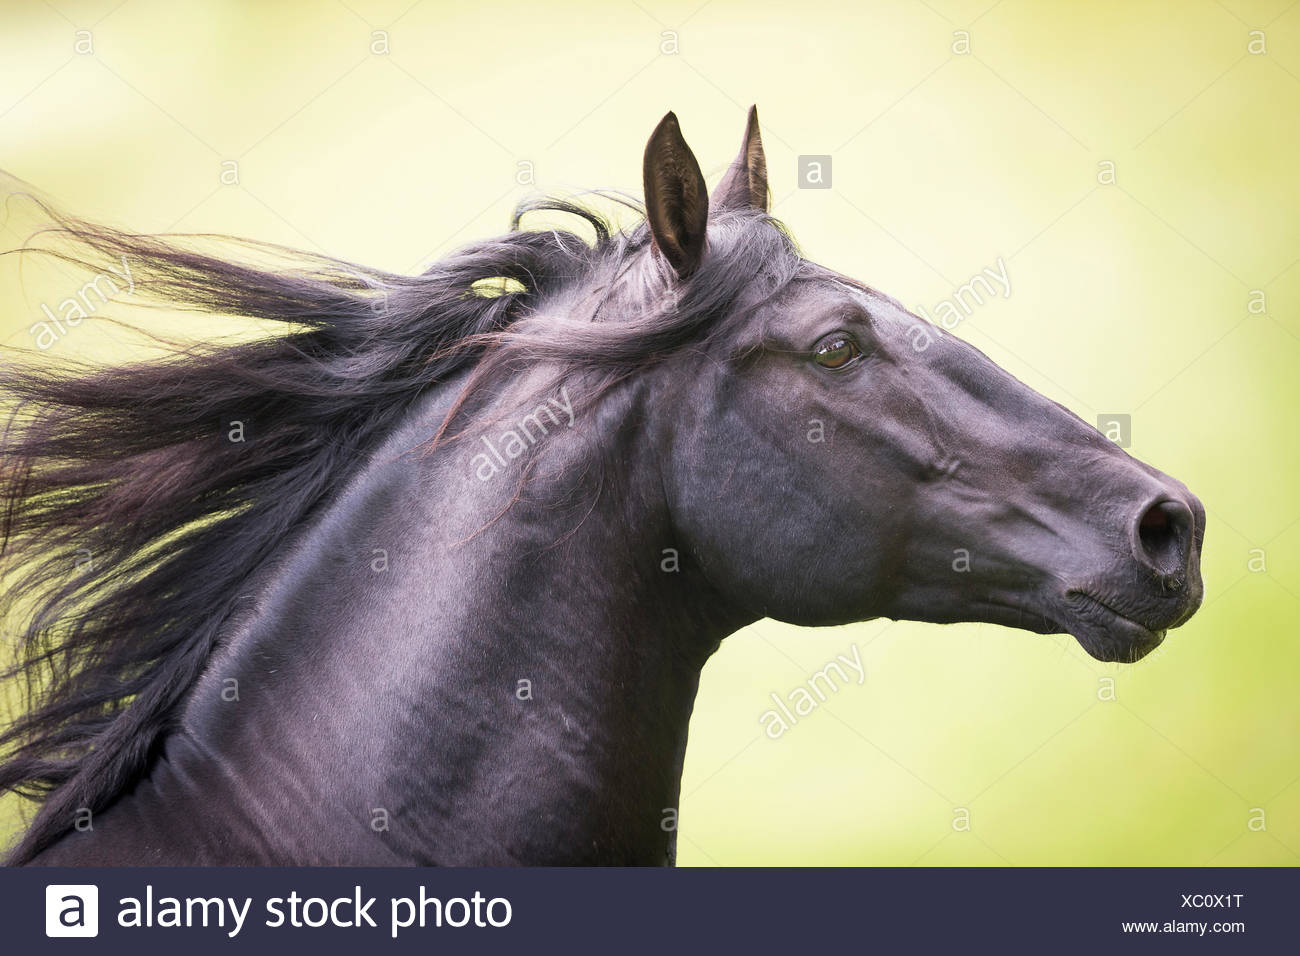 Pure Spanish Horse, Andalusian. Black stallion galloping on a pasture, portrait. Austria - Stock Image